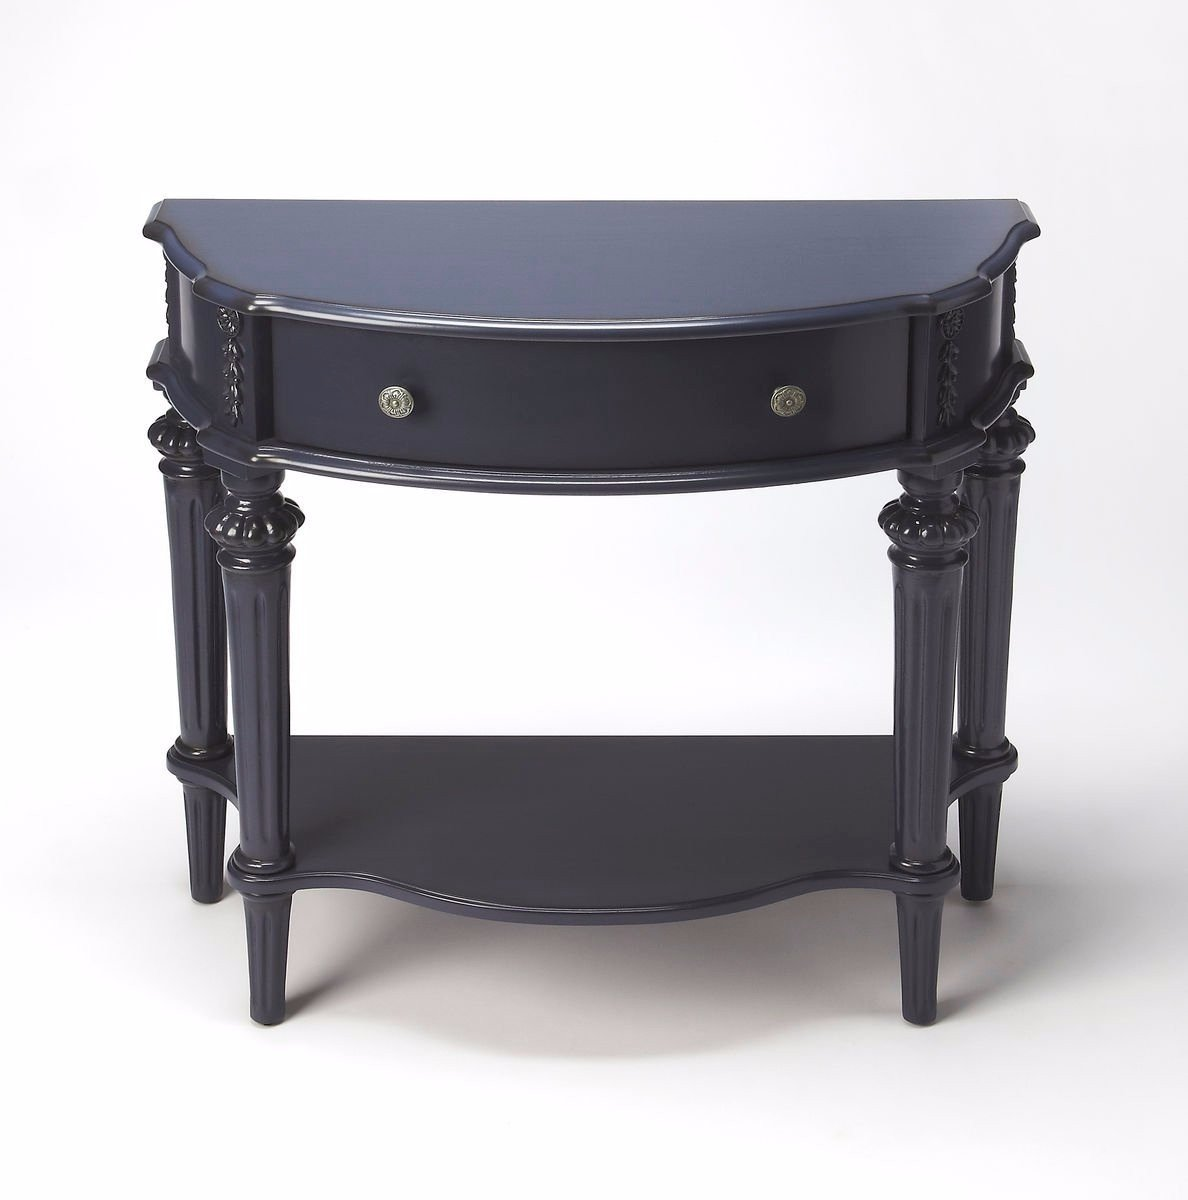 Ambiant Transitional CONSOLE TABLE Blue by Ambiant